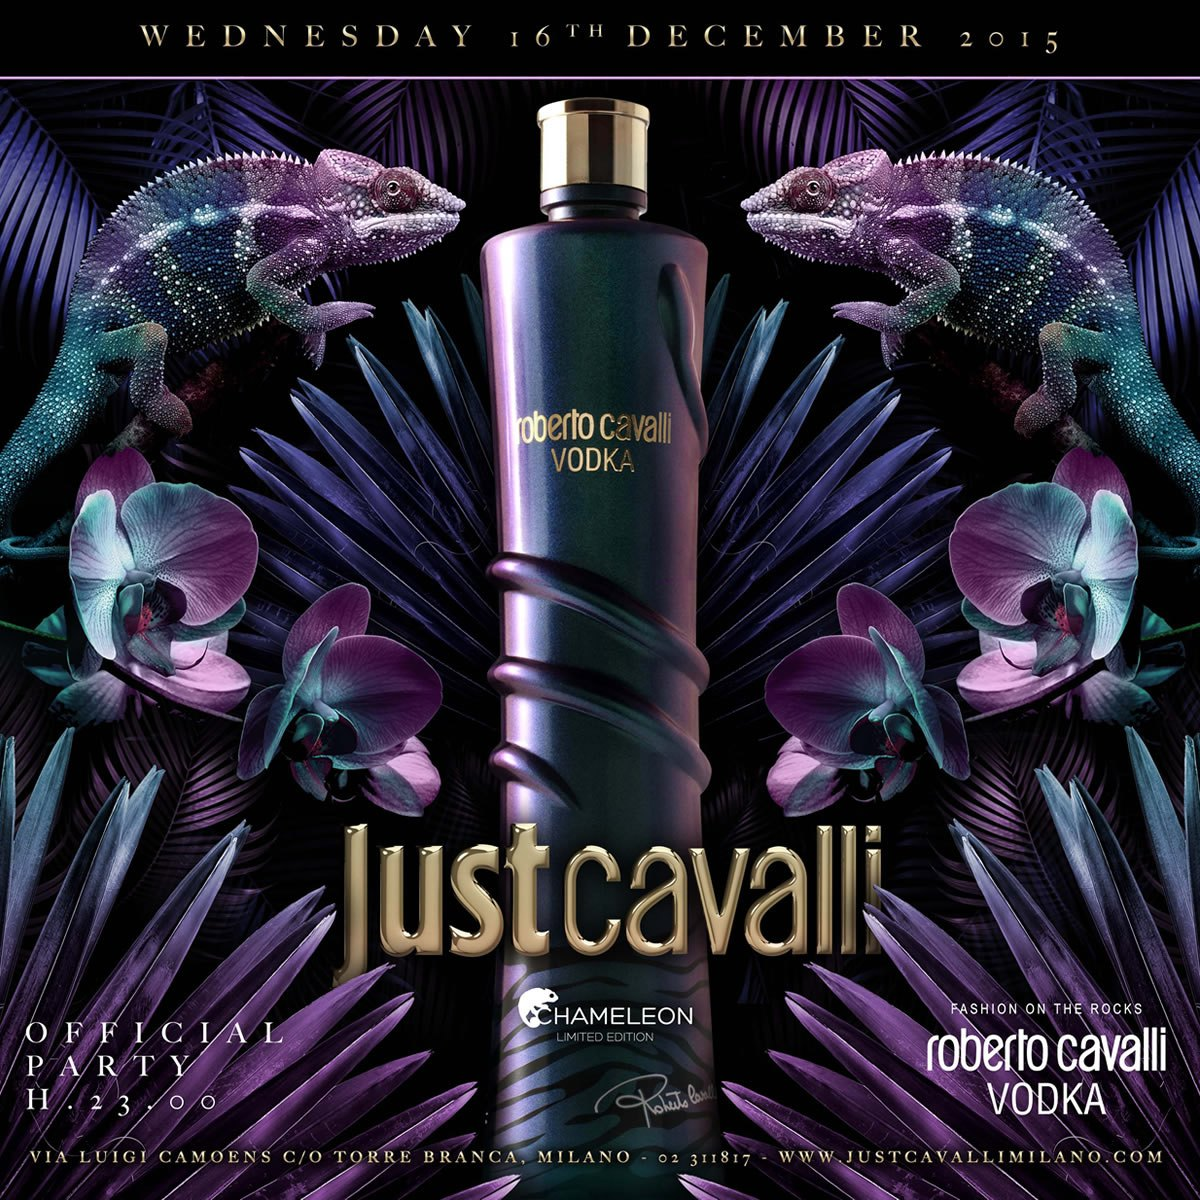 CHAMELEON PARTY ROBERTO CAVALLI VODKA